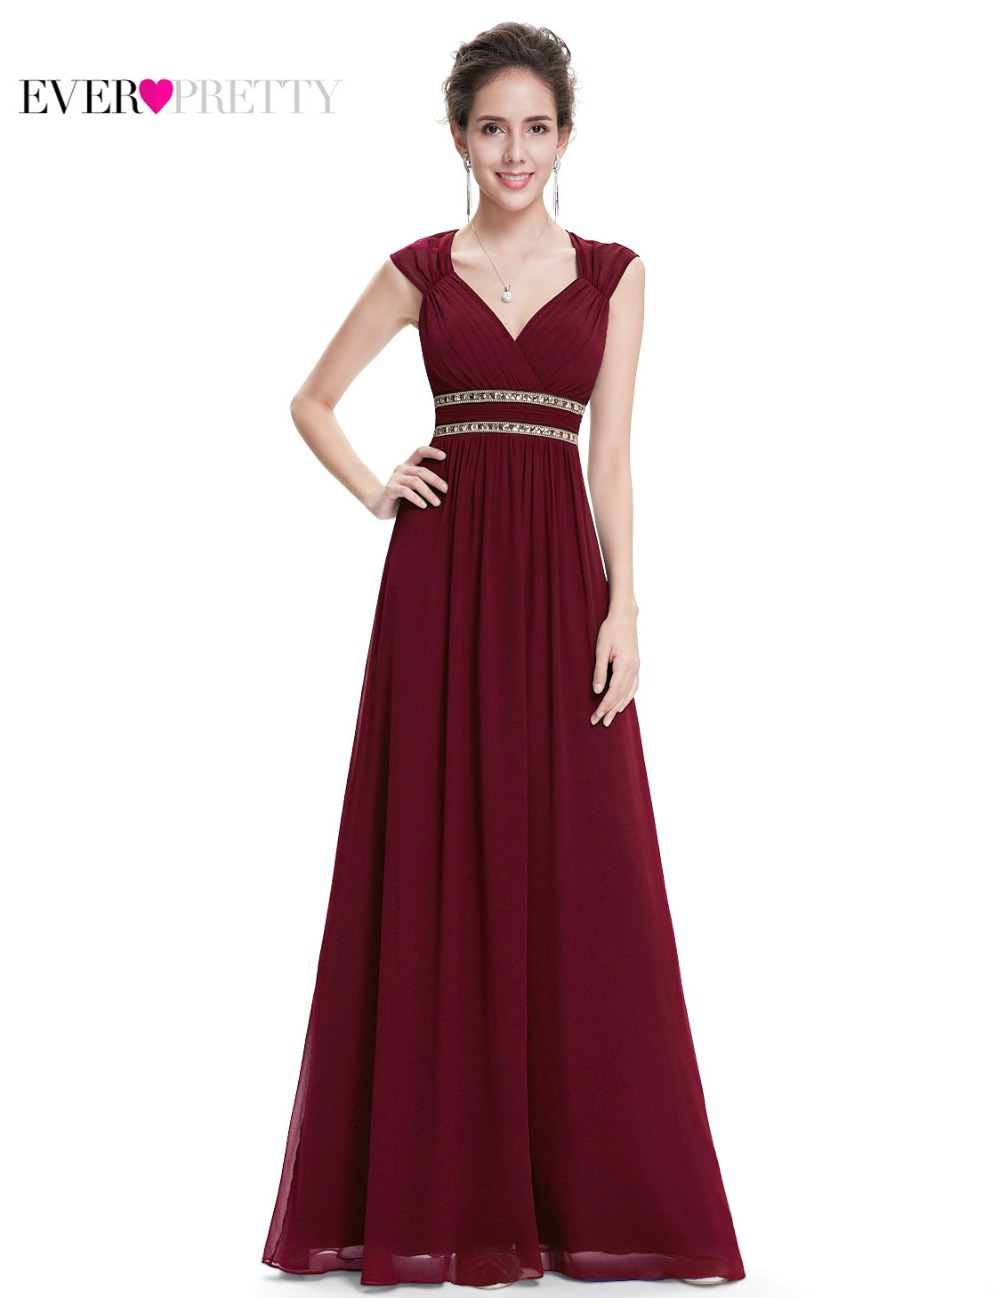 Ever Pretty 2020 Clearance Style Women Elegant Bridesmaid Dresses Long V-Neck Formal Dress Wedding Party Dress XX79680PEA